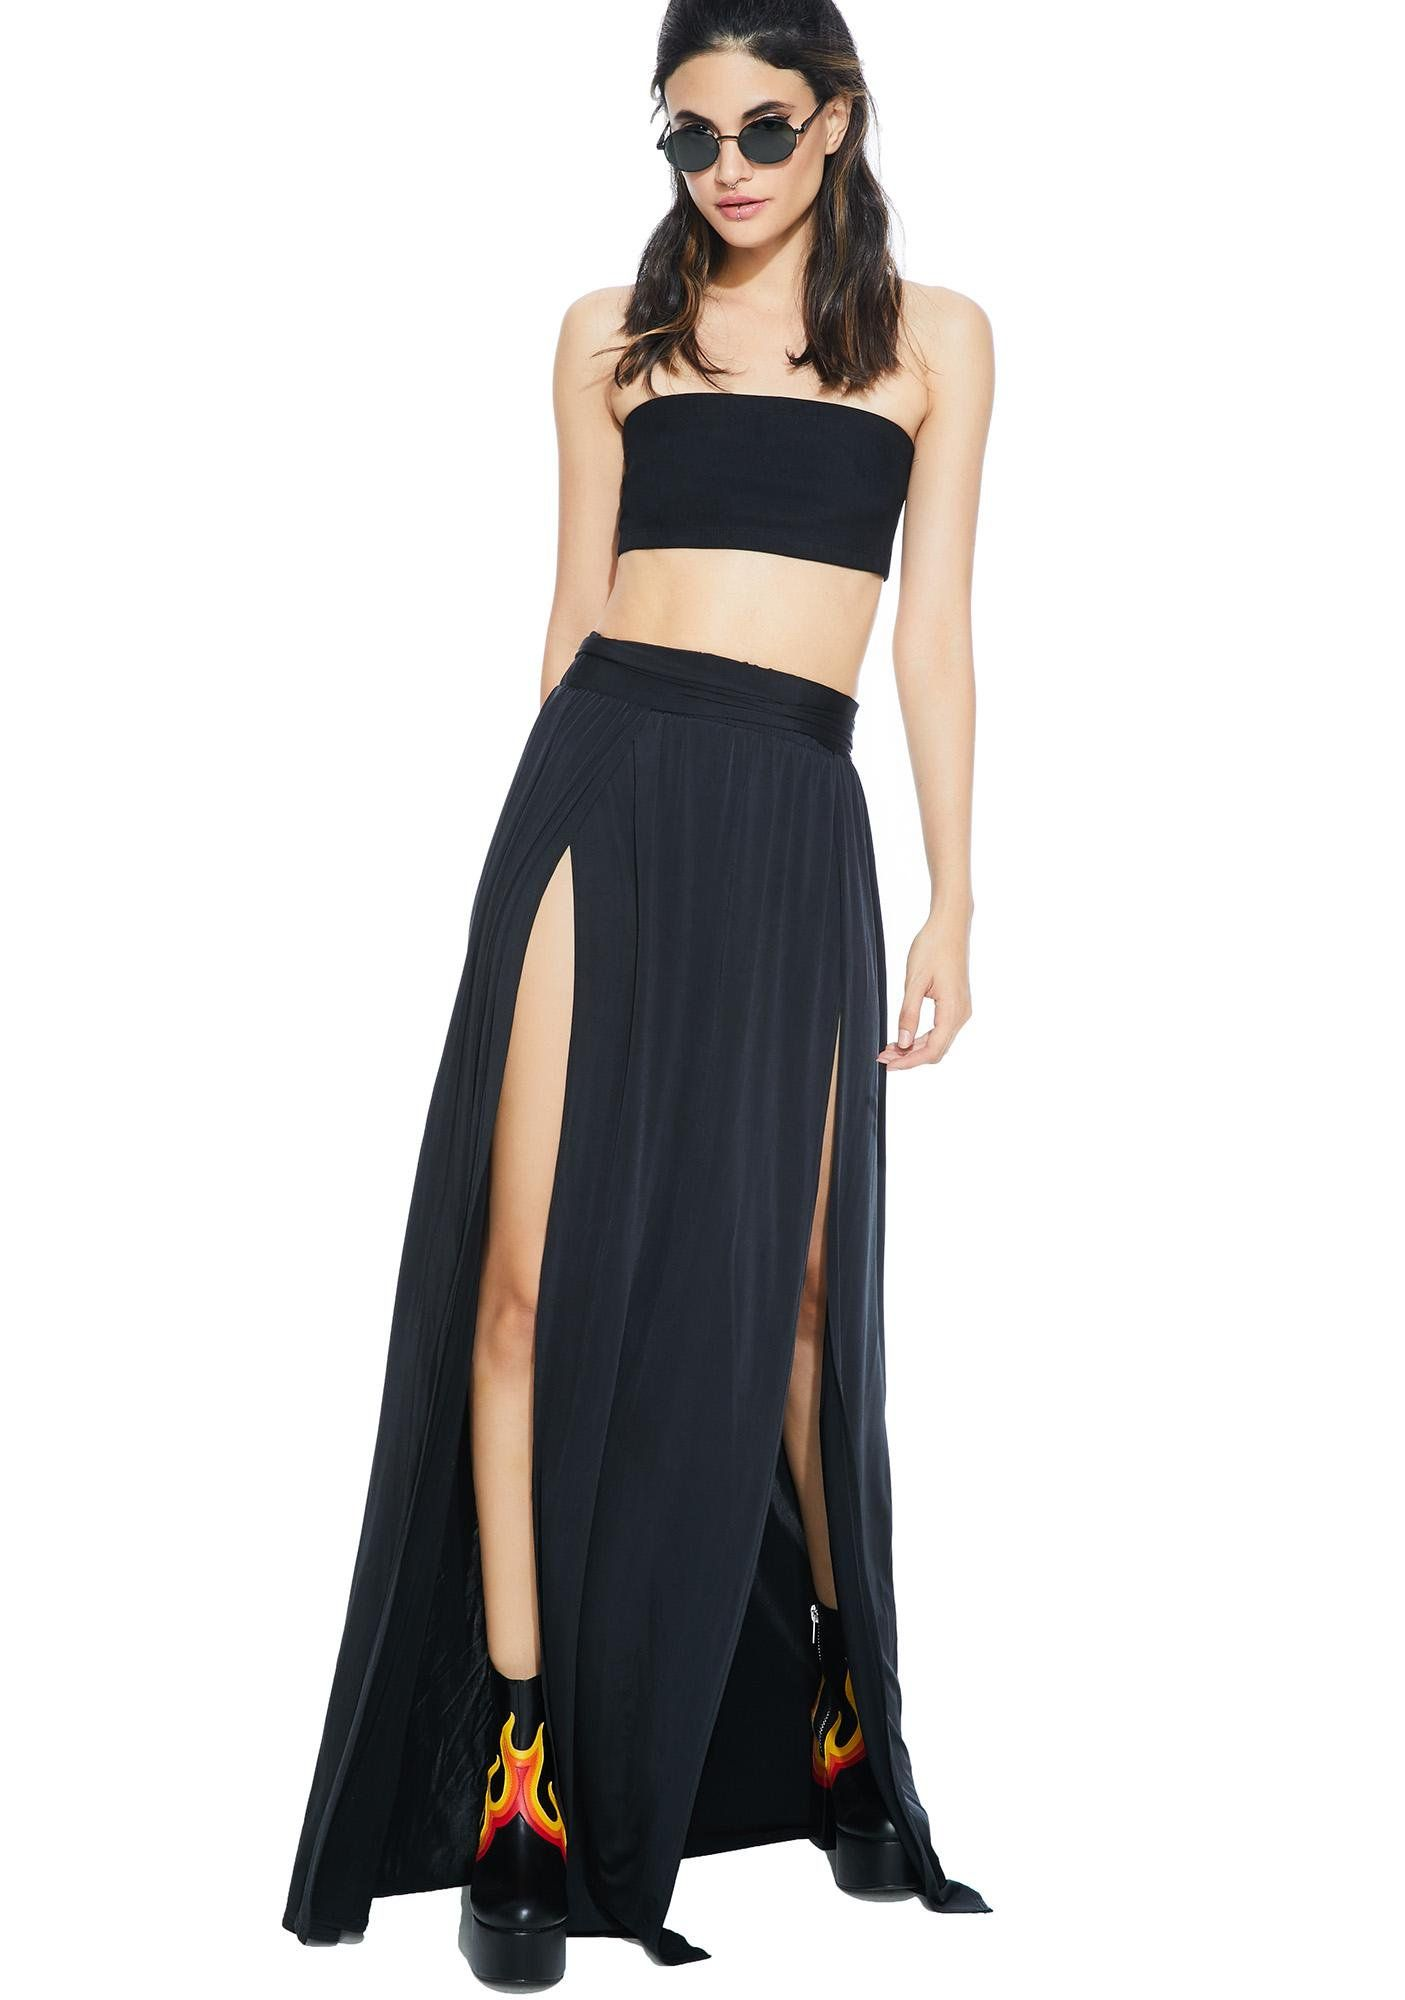 f713bbc5f9 Hera Double Slit Maxi Skirt cuz yer godlike, of course! Features a soft 'N  semi-sheer black construction, high waist, and double front thigh slits.